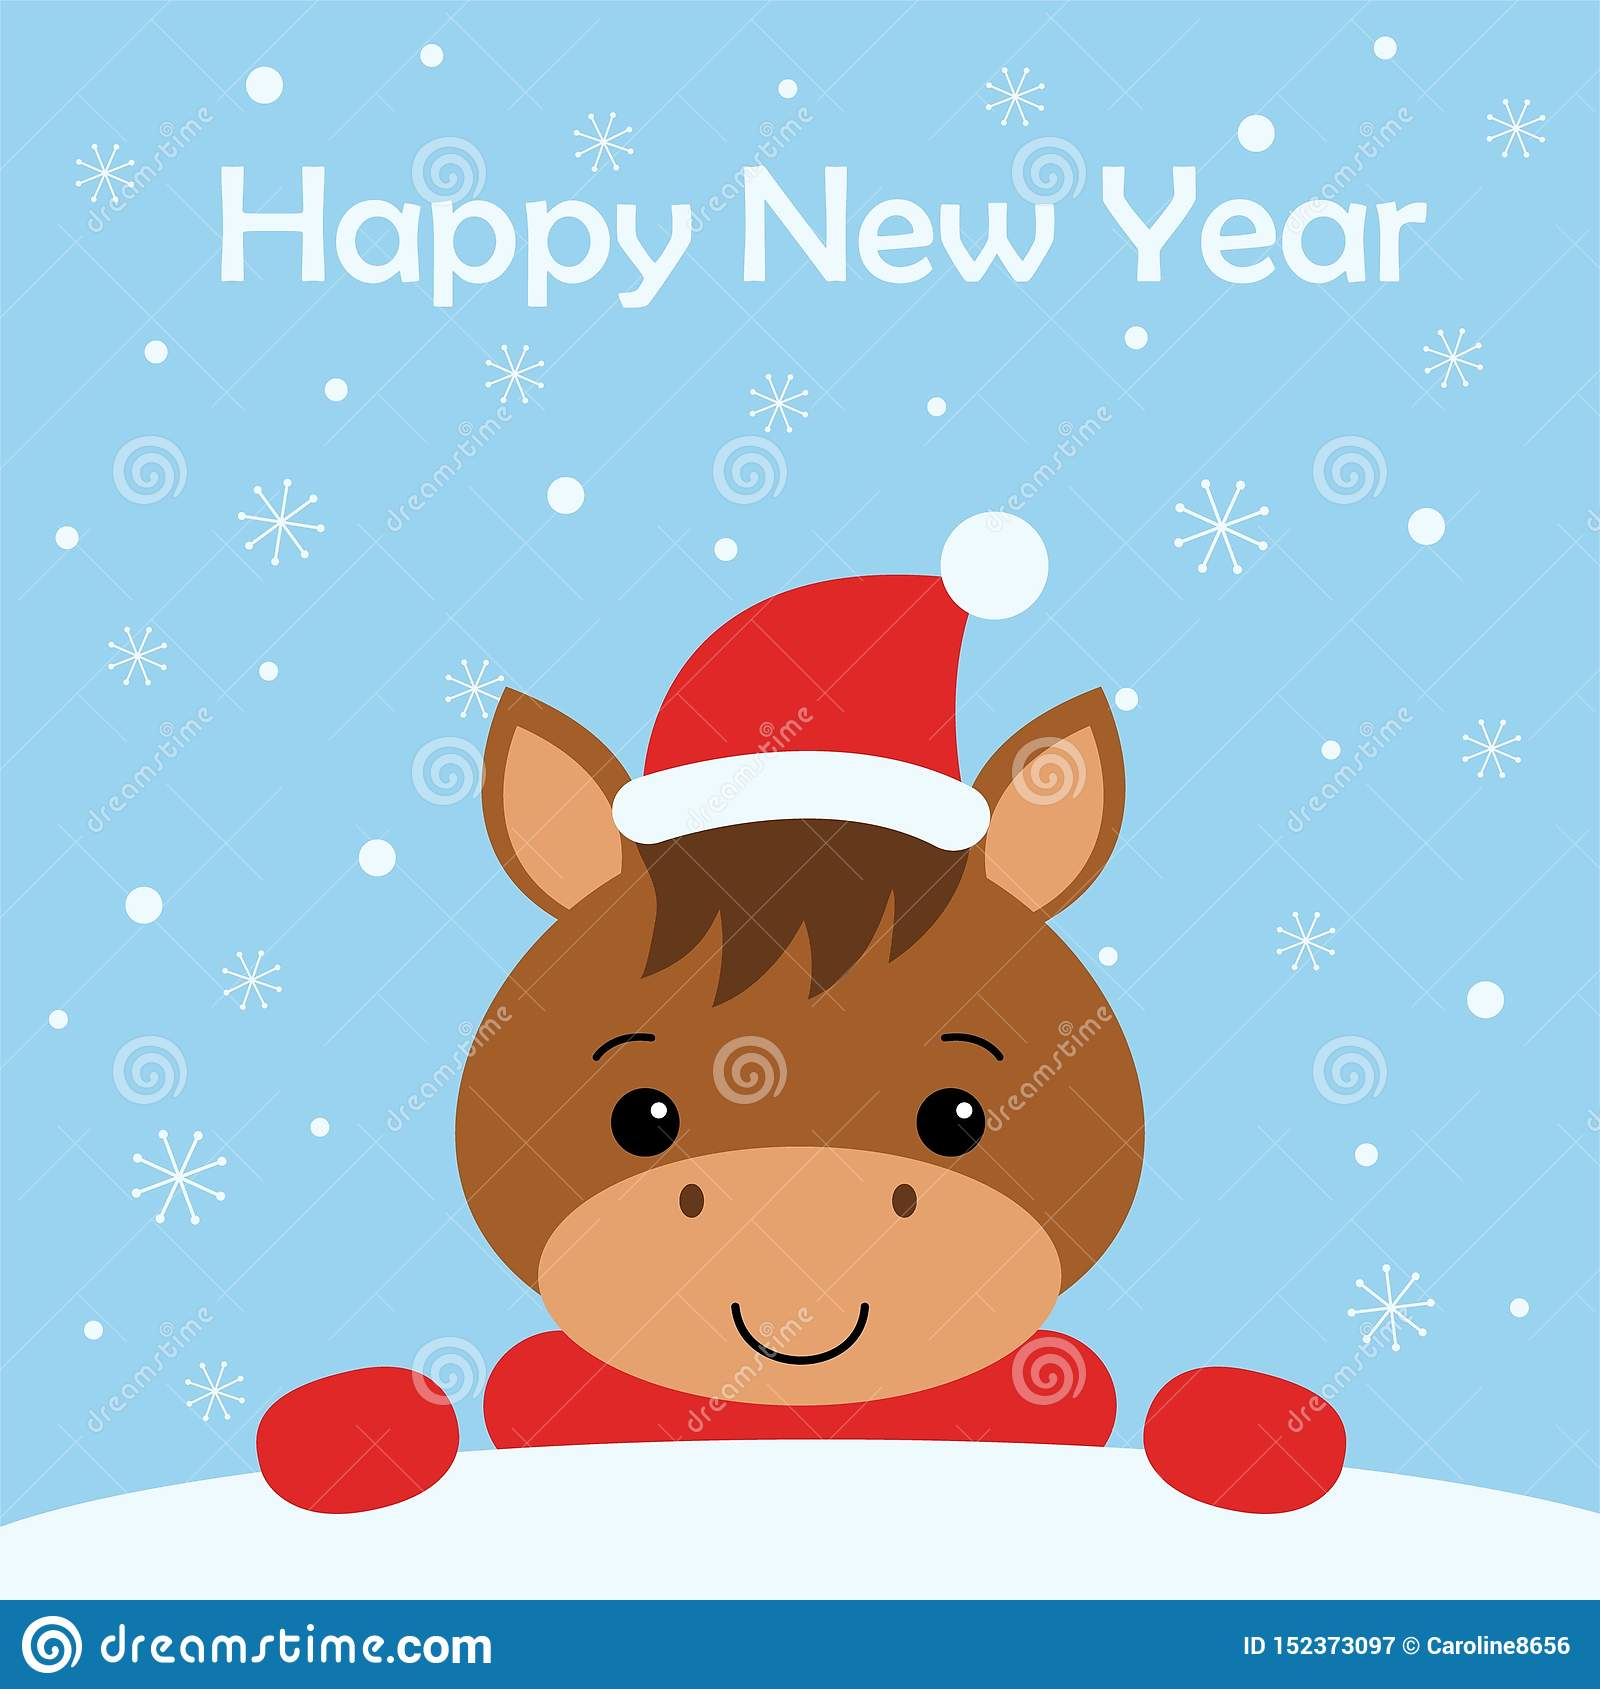 Merry Christmas And Happy New Year Card With Funny Horse Snow Background Stock Illustration Illustration Of Holiday Cartoon 152373097